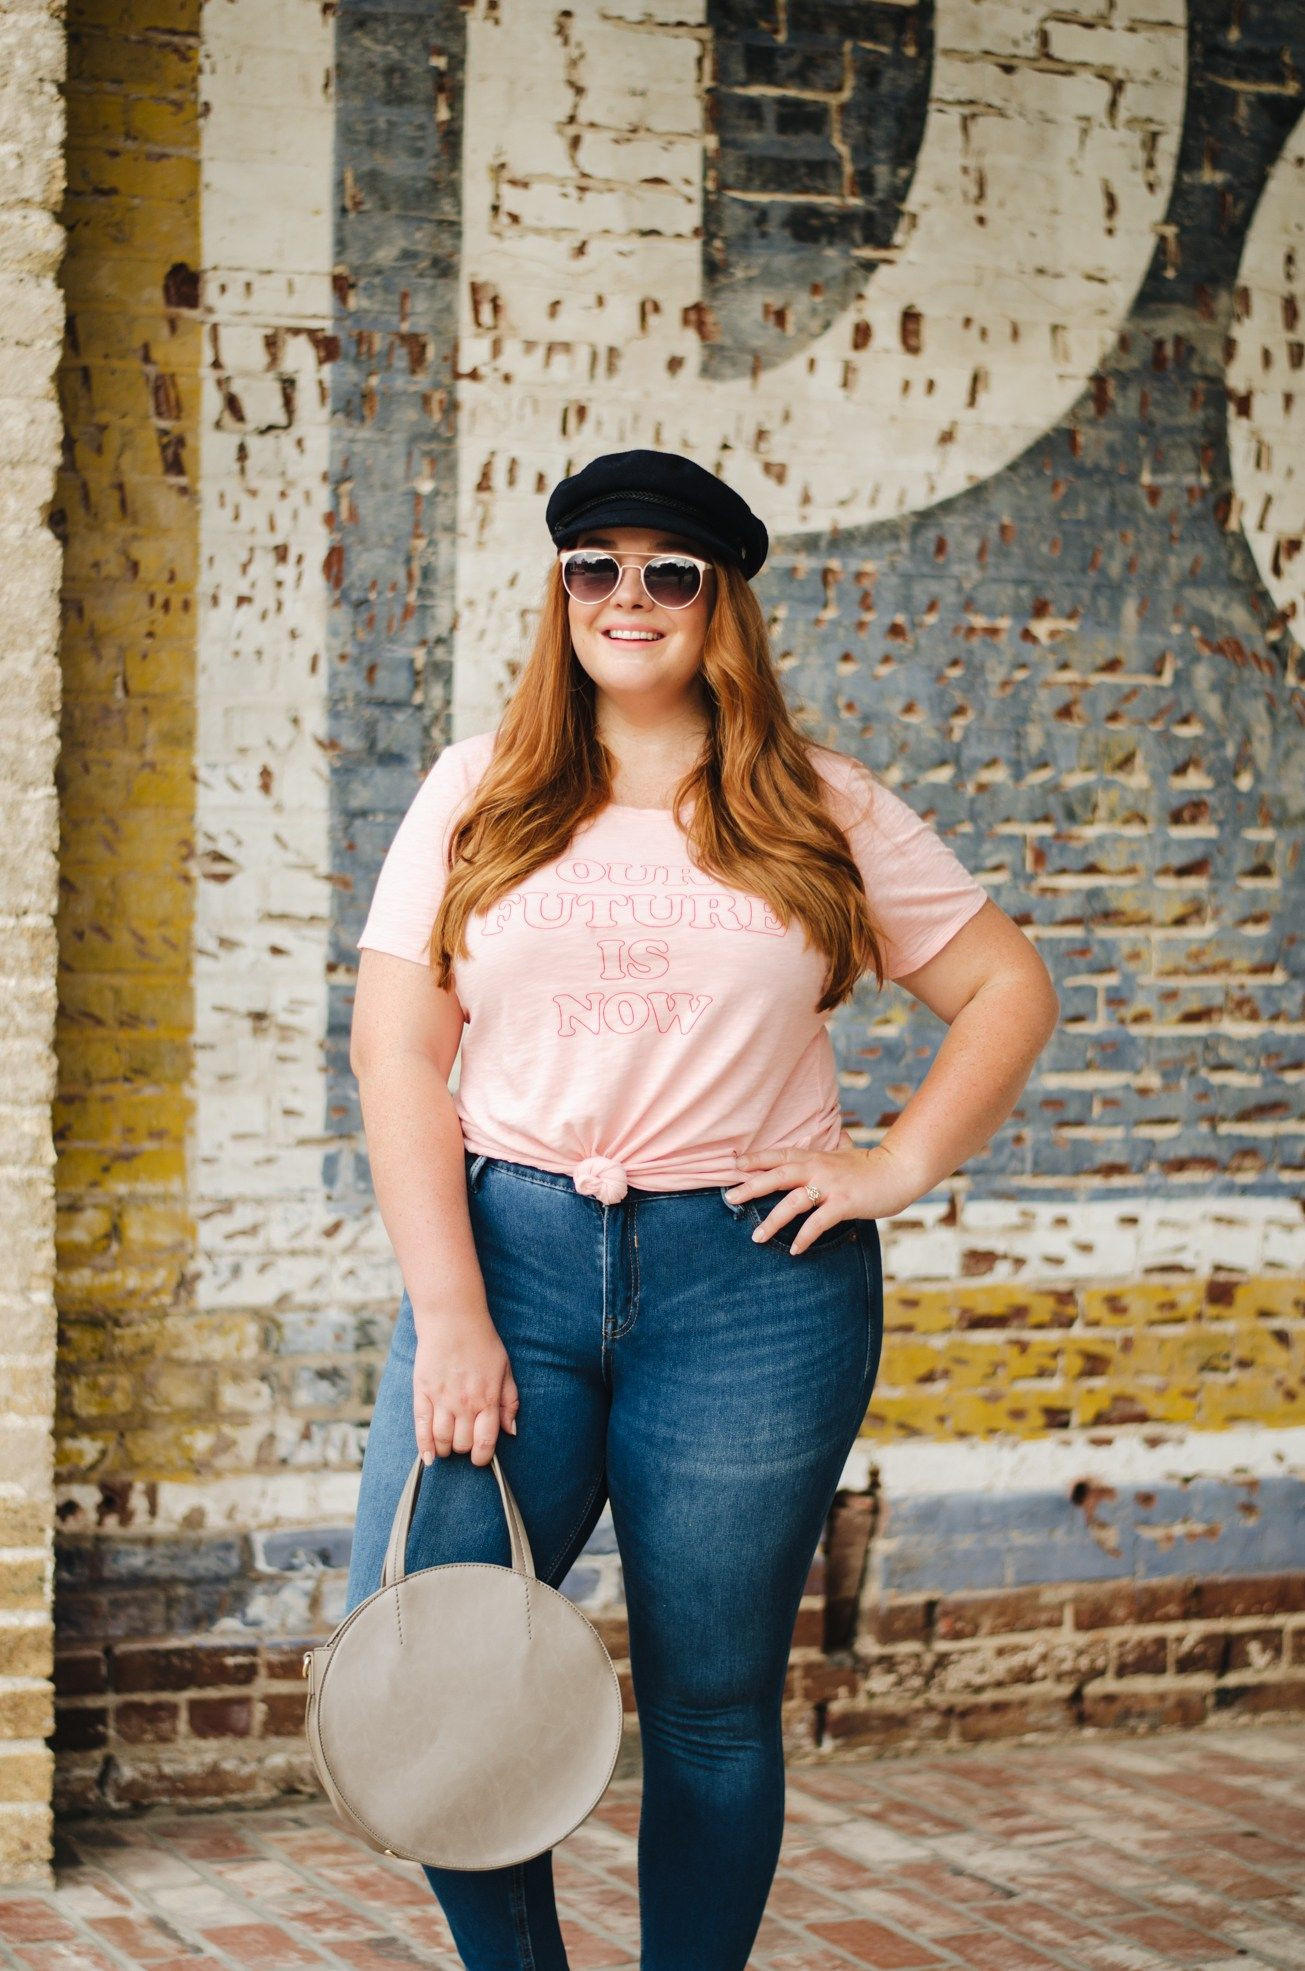 newest 6a62e 5272d Retro Style + Modern Comfort from Old Navy Featuring the Release Hem 24 7  Rockstar Jeans- thestylelodown.com     lolo russell    curvy blogger